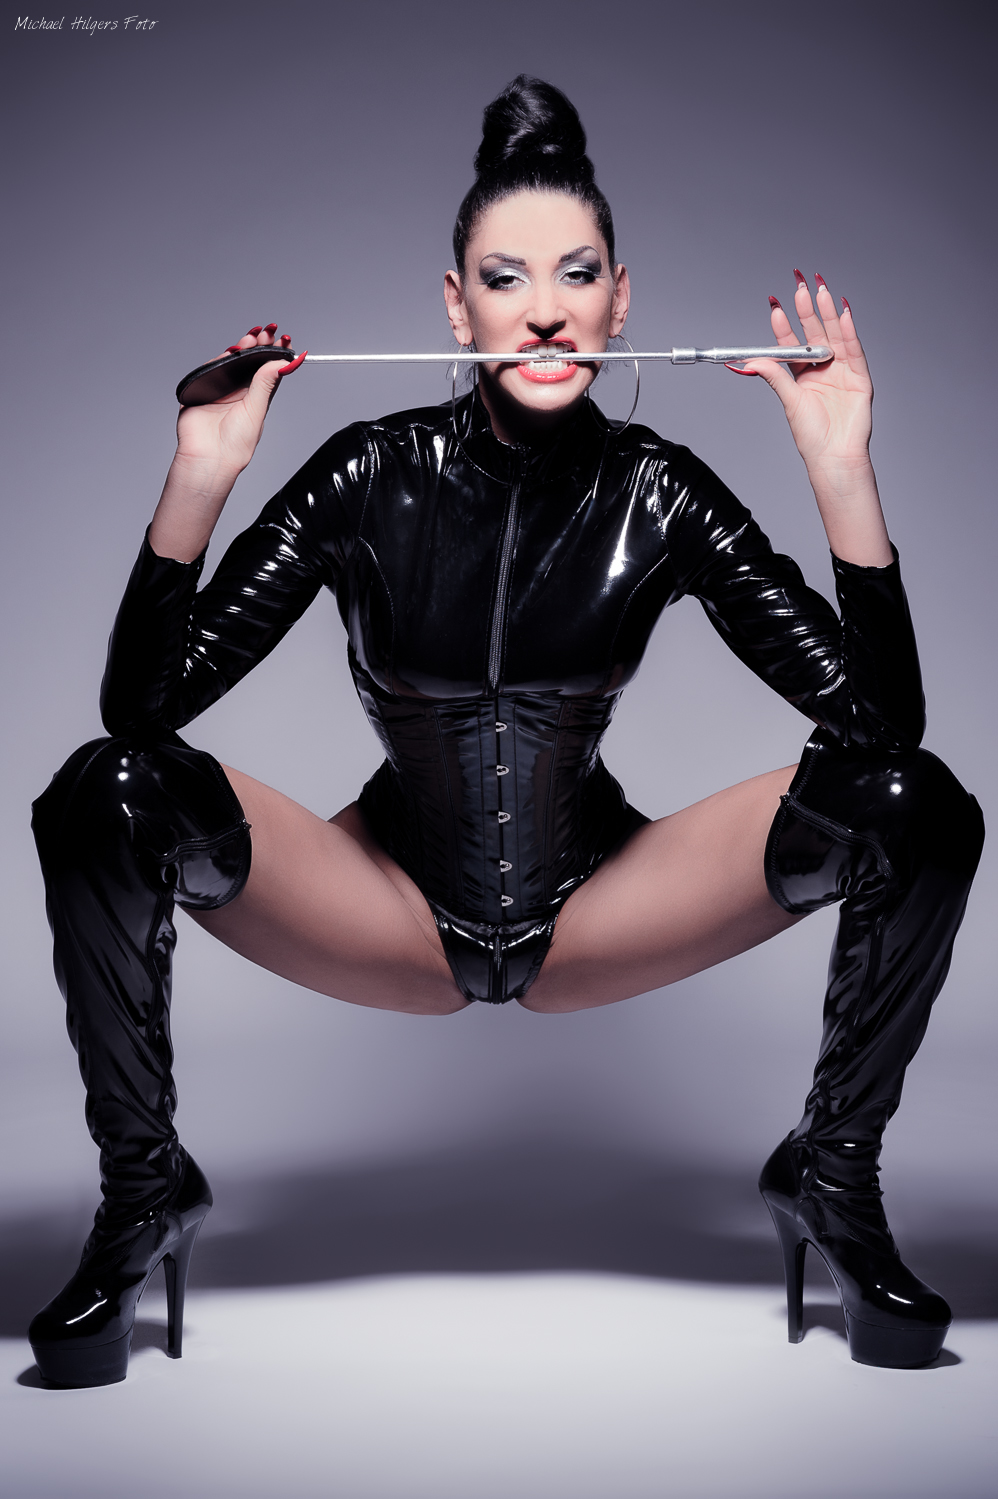 Femdom Boots Slave Suffering From Humiliation Under